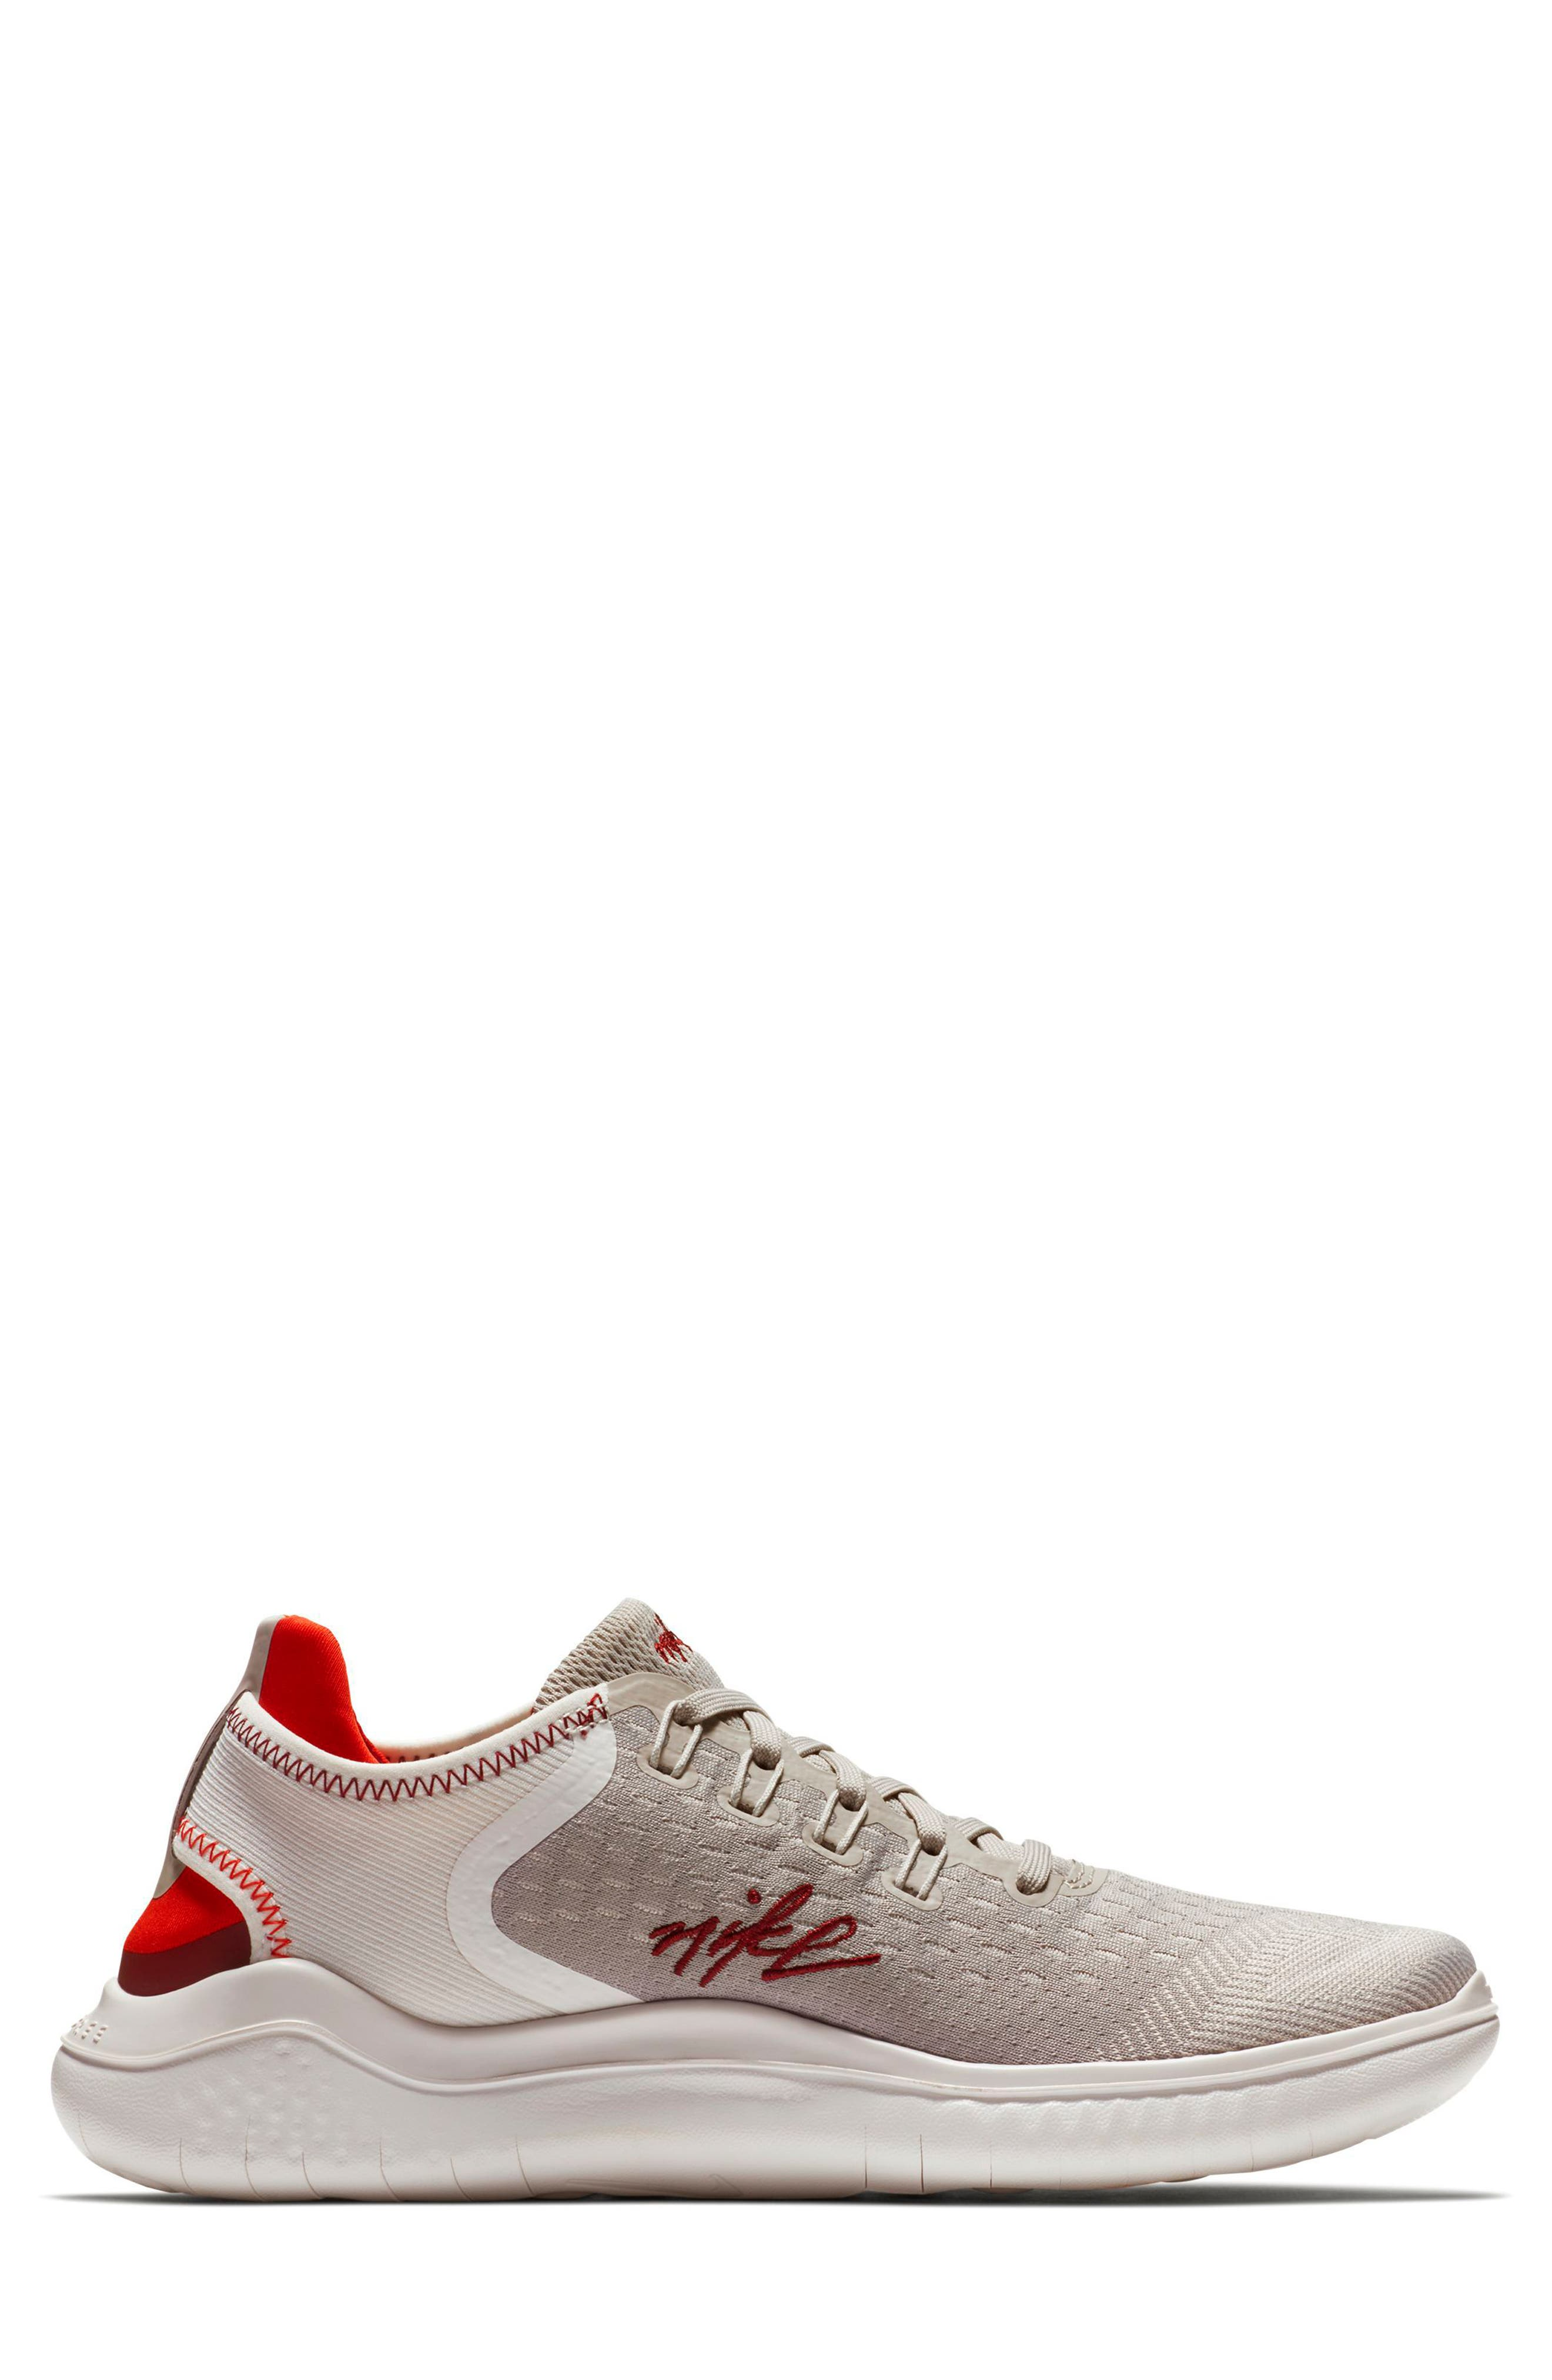 Free RN 2018 Running Shoe,                             Alternate thumbnail 3, color,                             Moon Particle/ Team Red